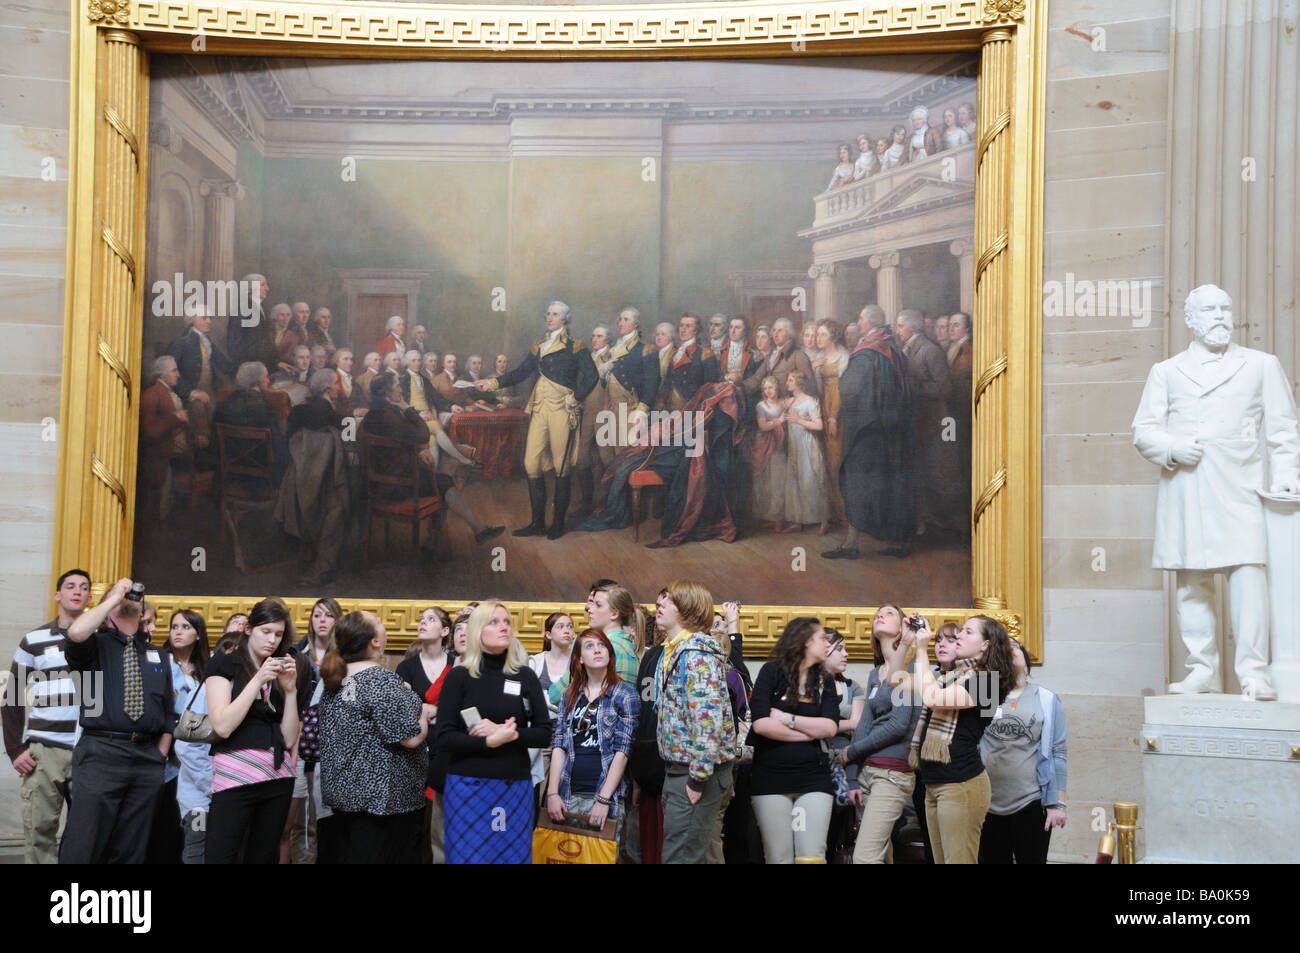 Visitors to the Rotunda of the U. S. Capitol building in Washington, D. C. see paintings of scenes from American - Stock Image